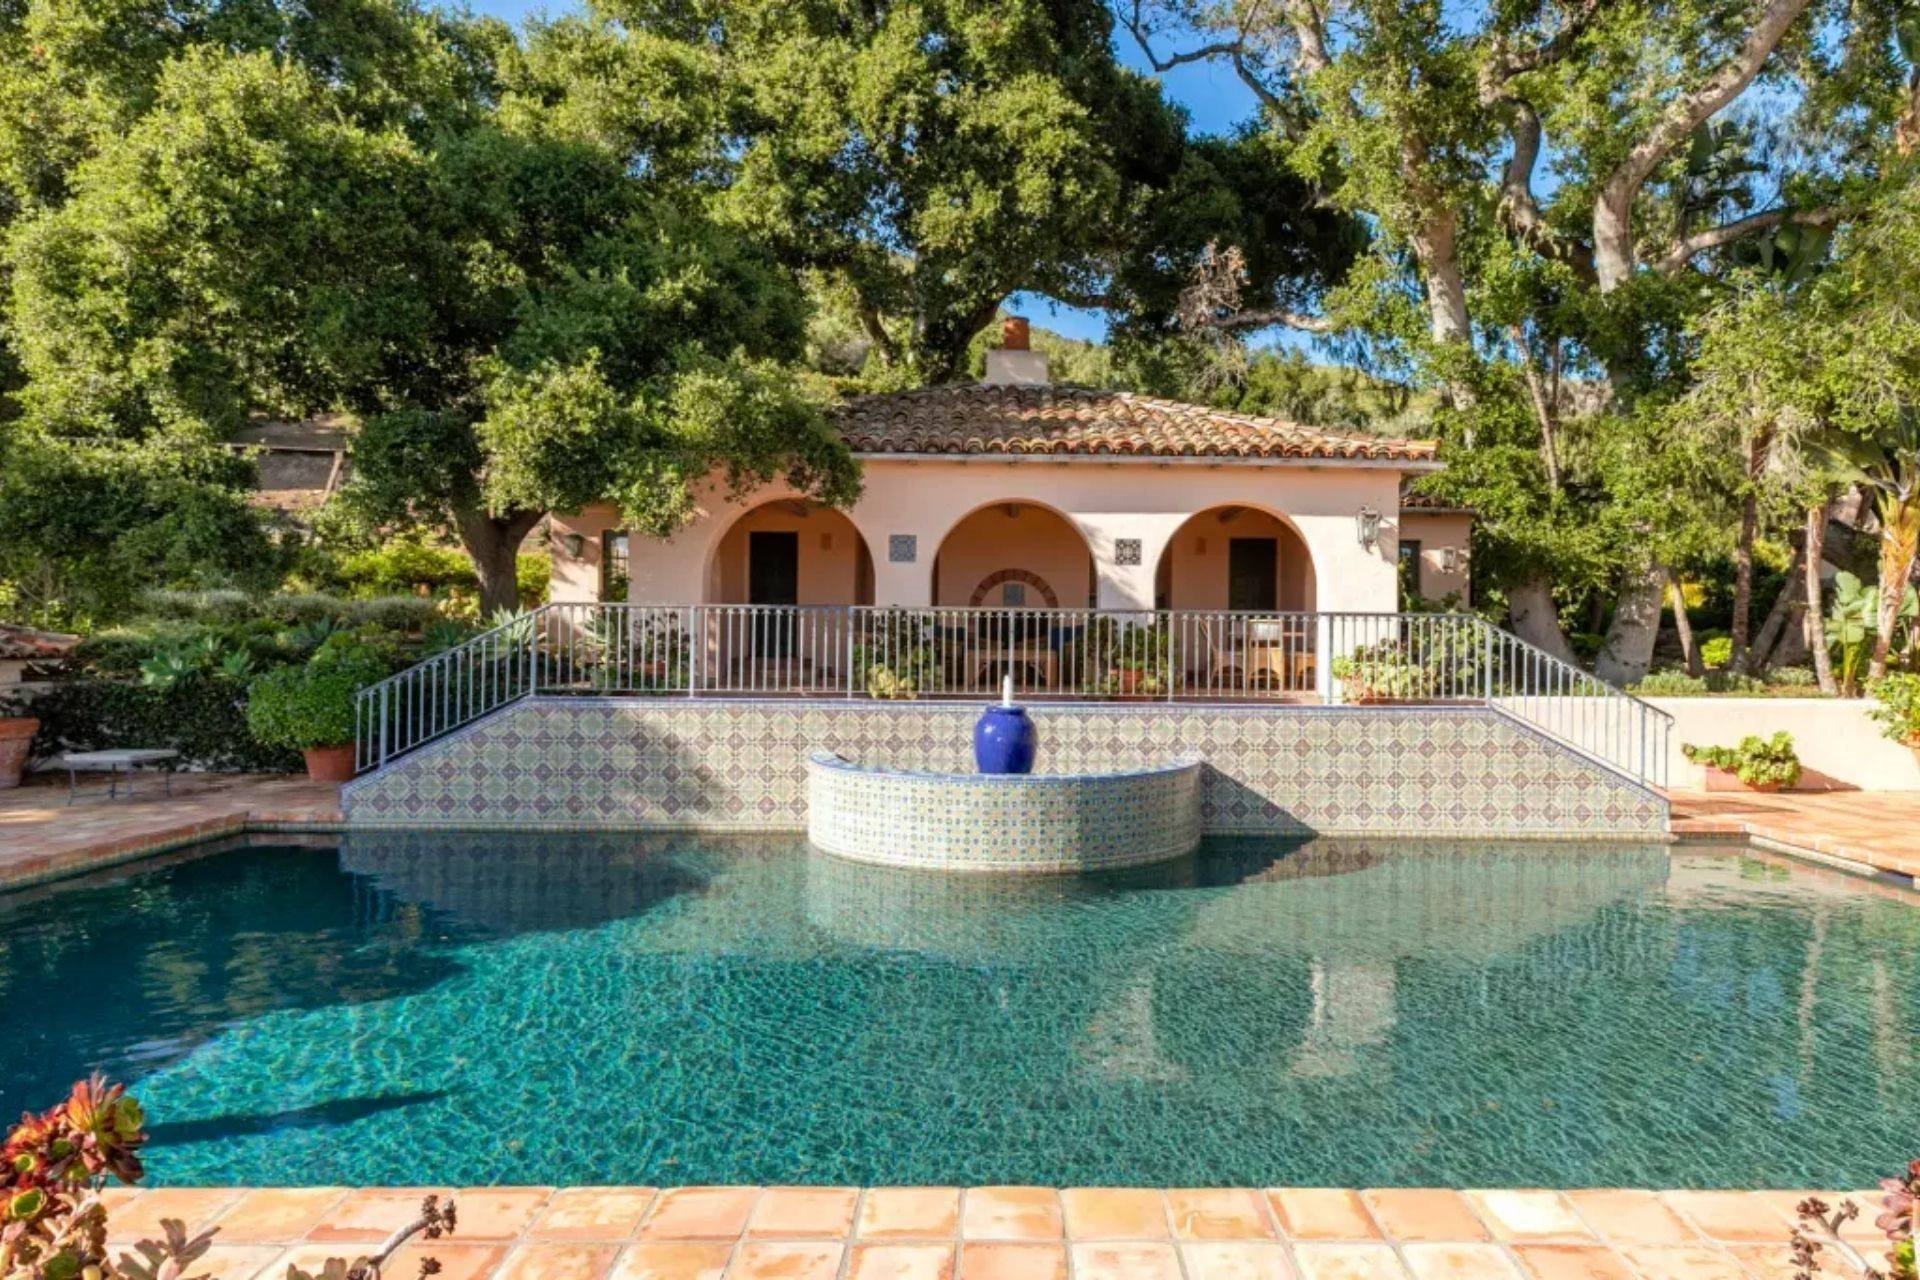 Casa orlando bloom y katy perry piscina con mosaicos de colores